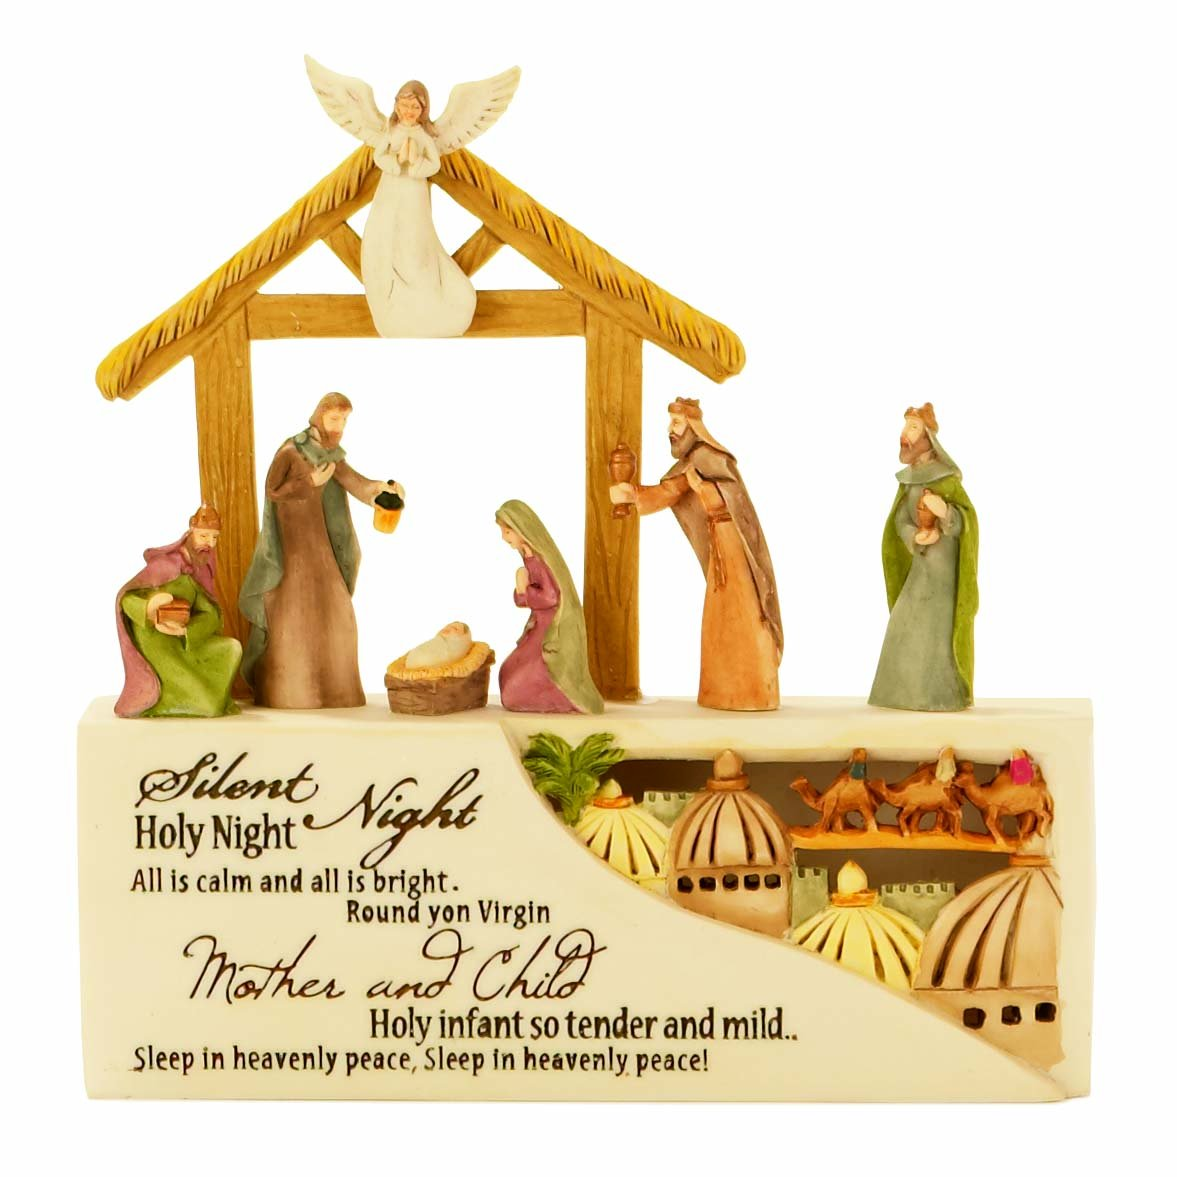 Dicksons Silent Night Nativity LED Lighted 5 x 5 Resin Stone Christmas Nativity Scene Figurine